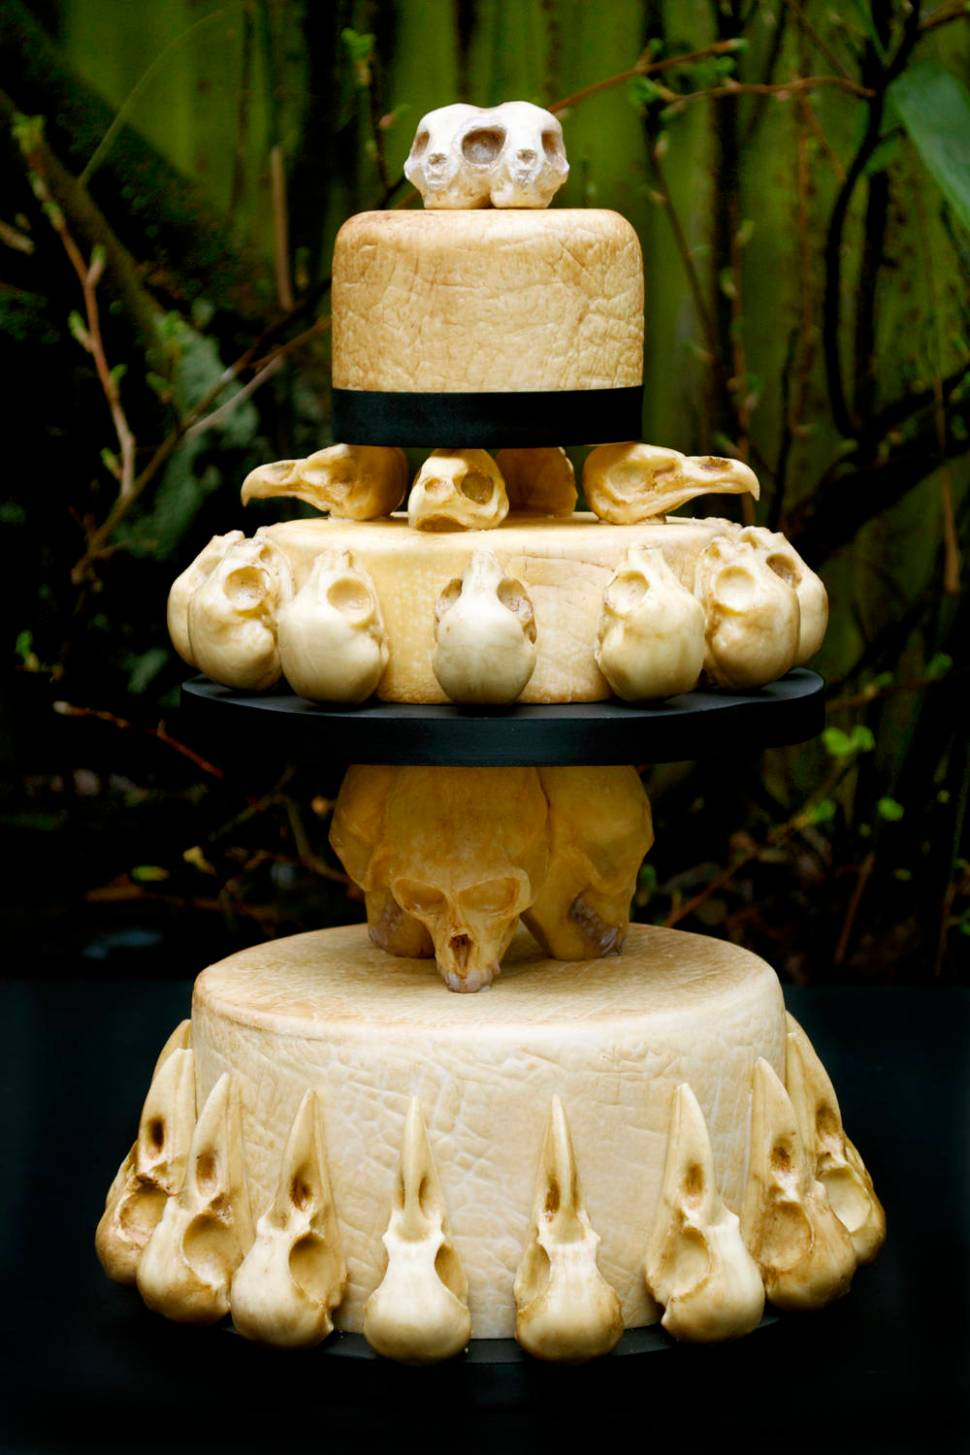 Baker Anna at Eat Your Heart Out Bakers made this astounding skull wedding-cake. Food artist Annabel de Vetten